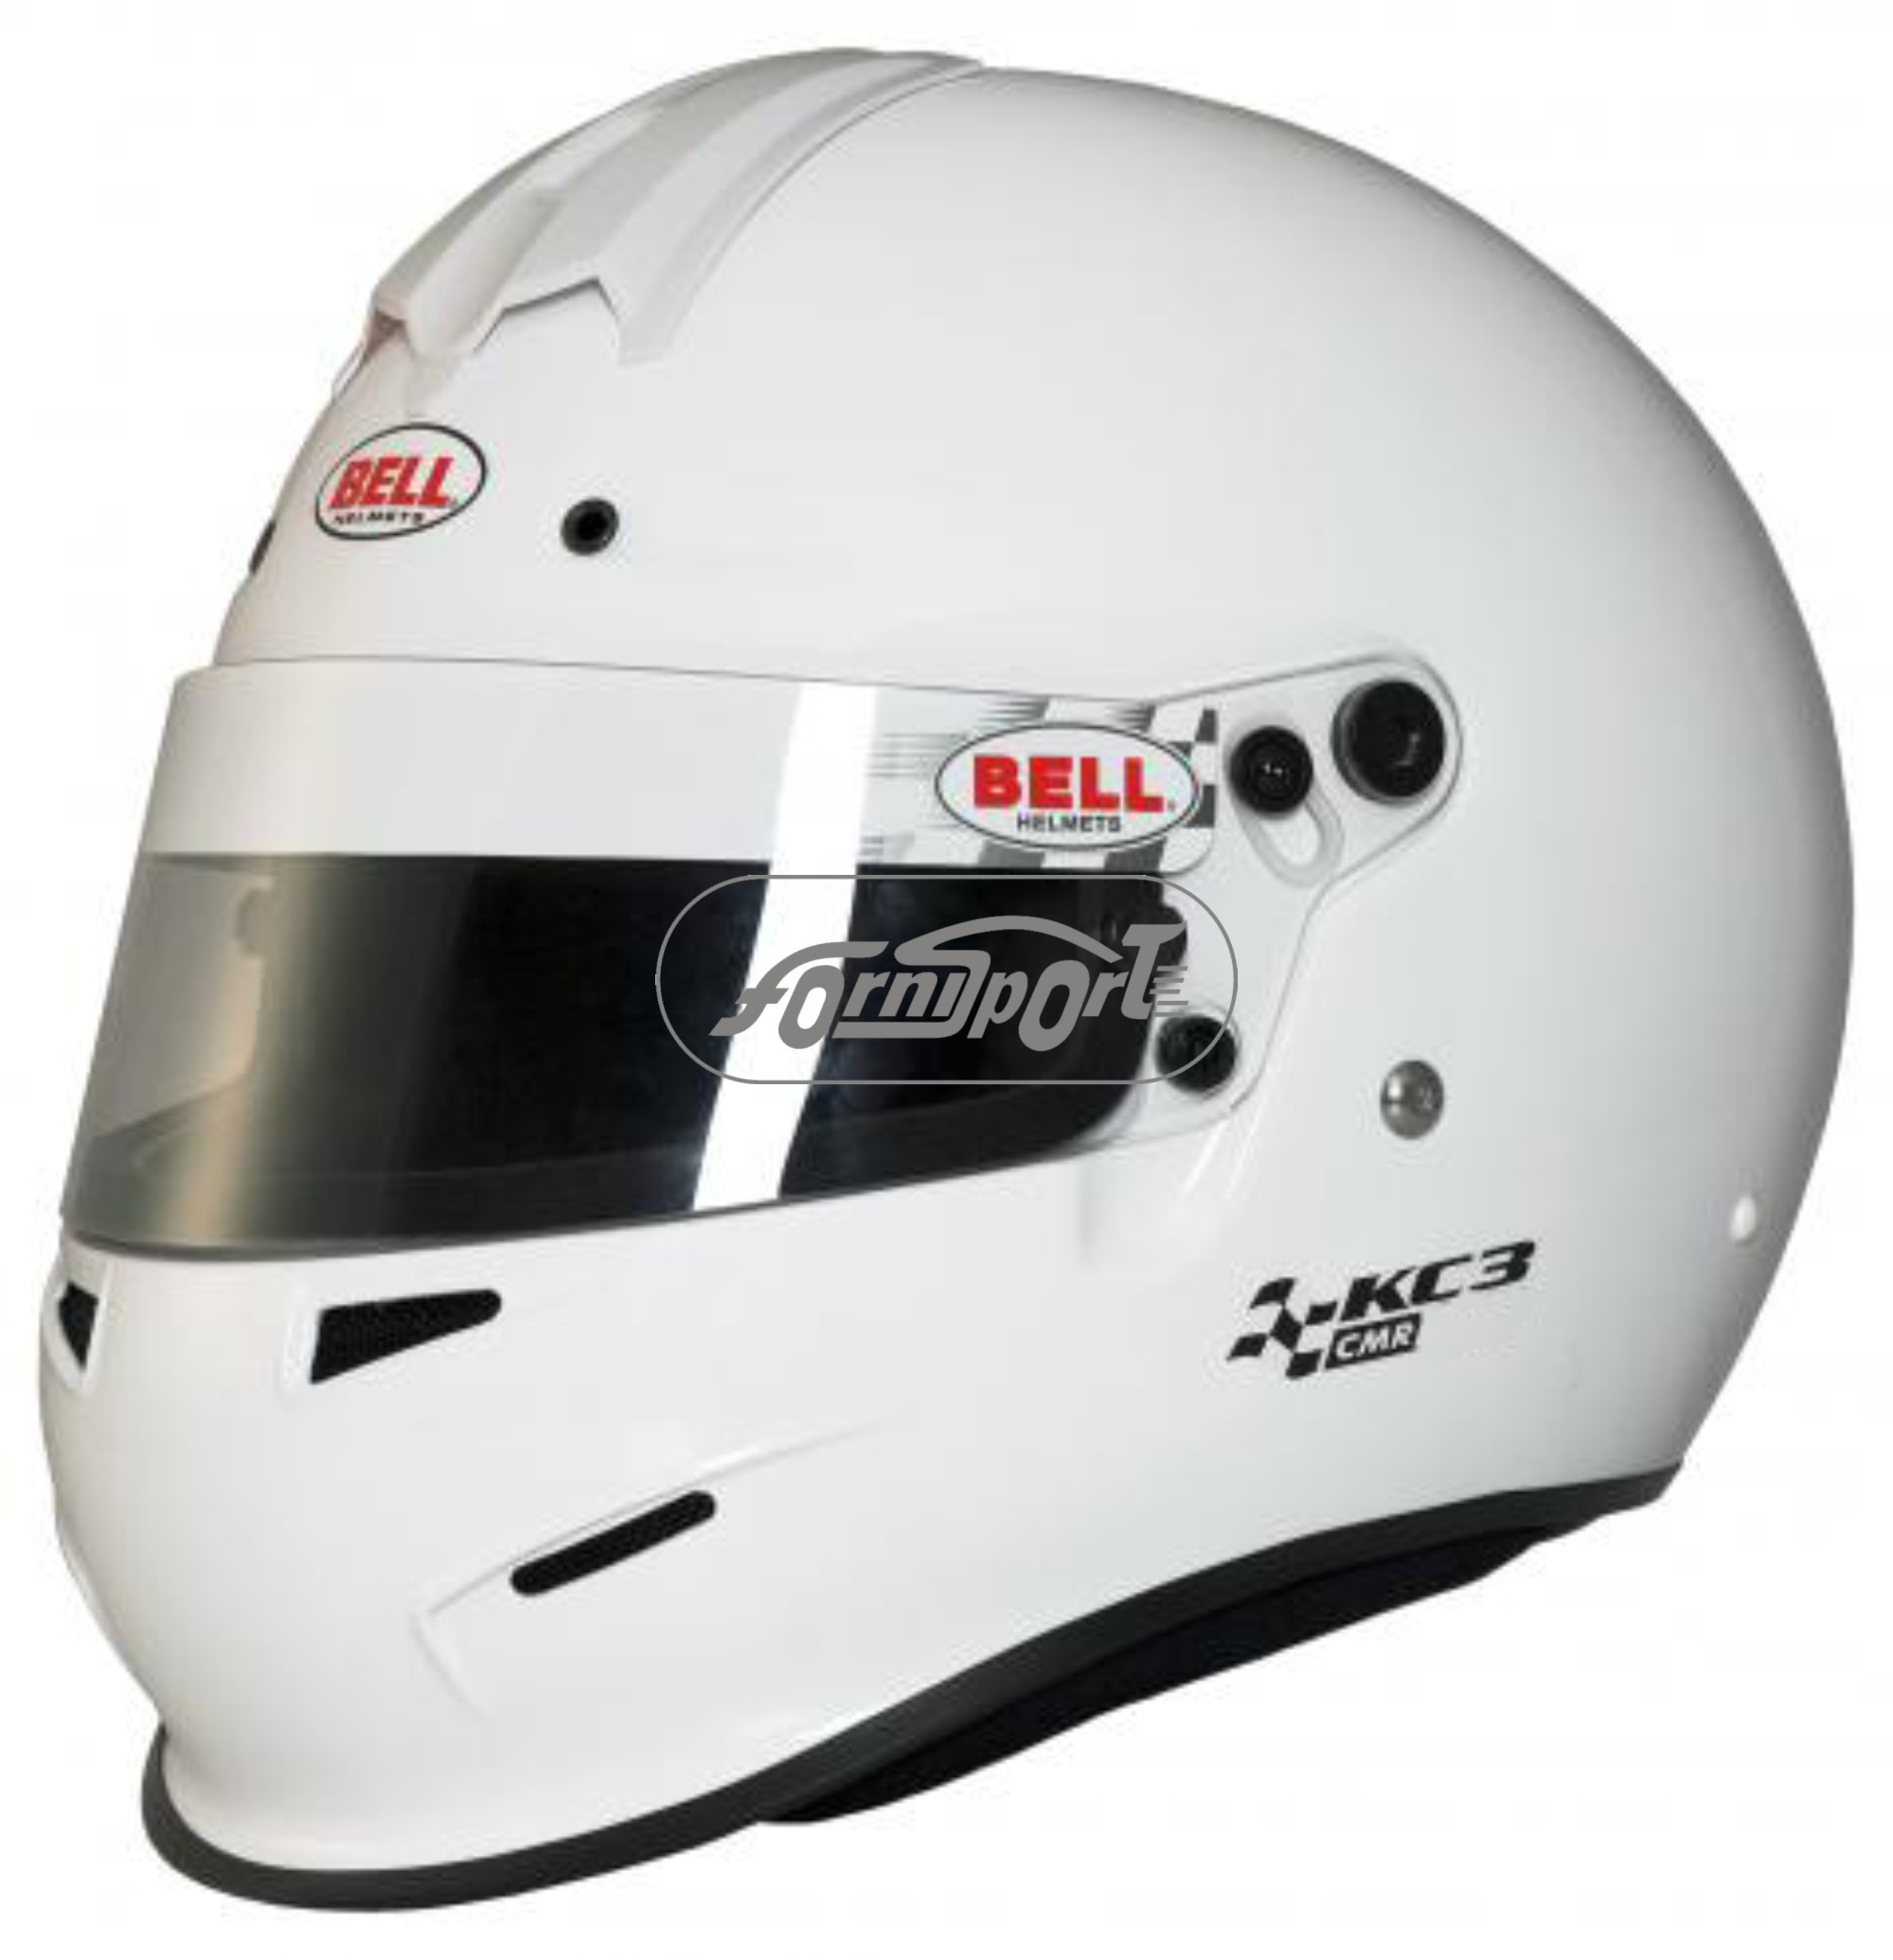 Casco FIA BELL Integral Hom.  KC3 T53